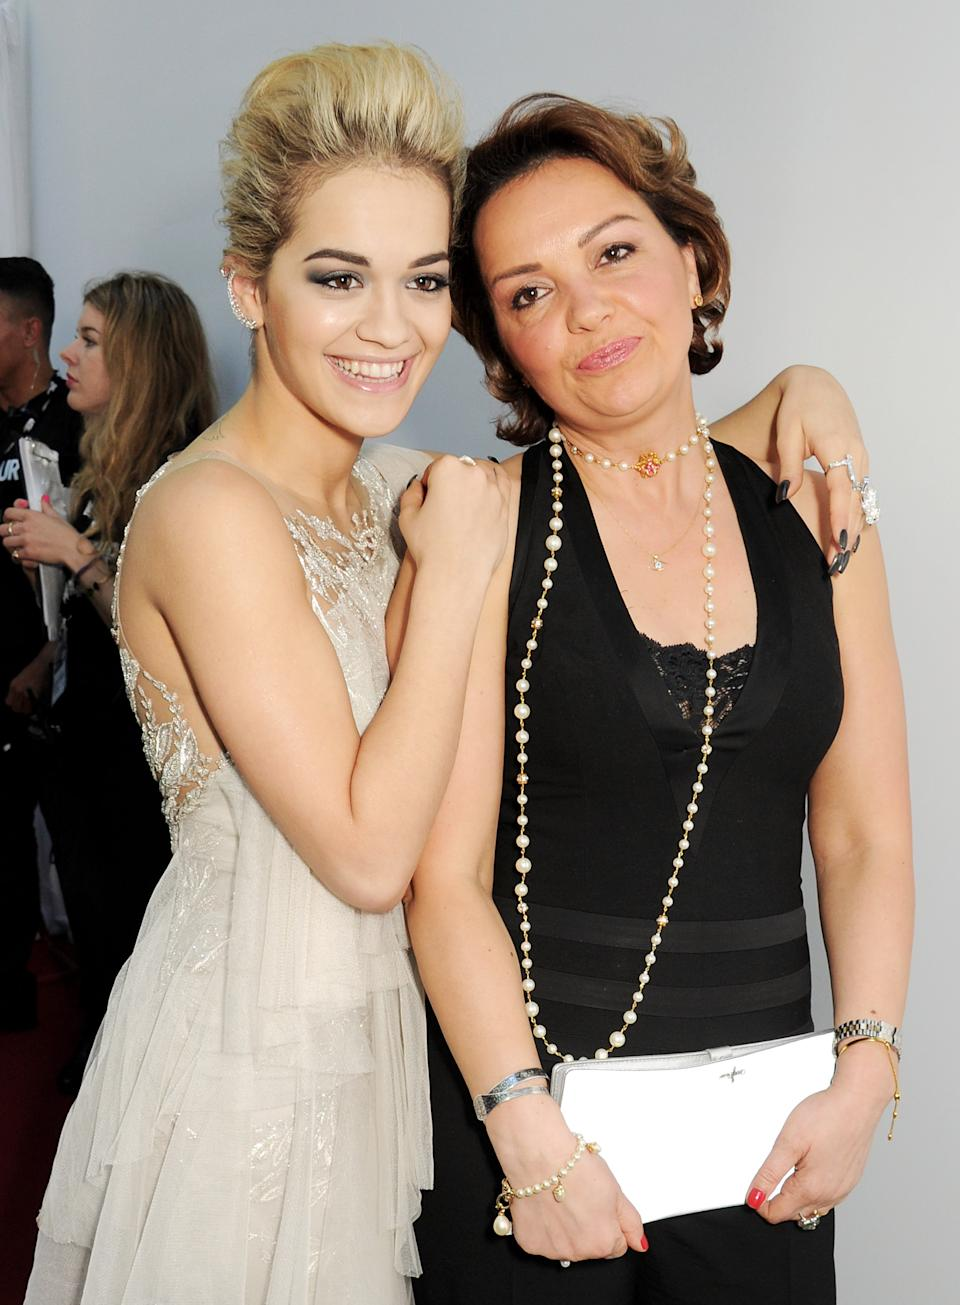 Rita's mum Vera was called a hypocrite after slamming people for not socially distancing. Photo: Getty